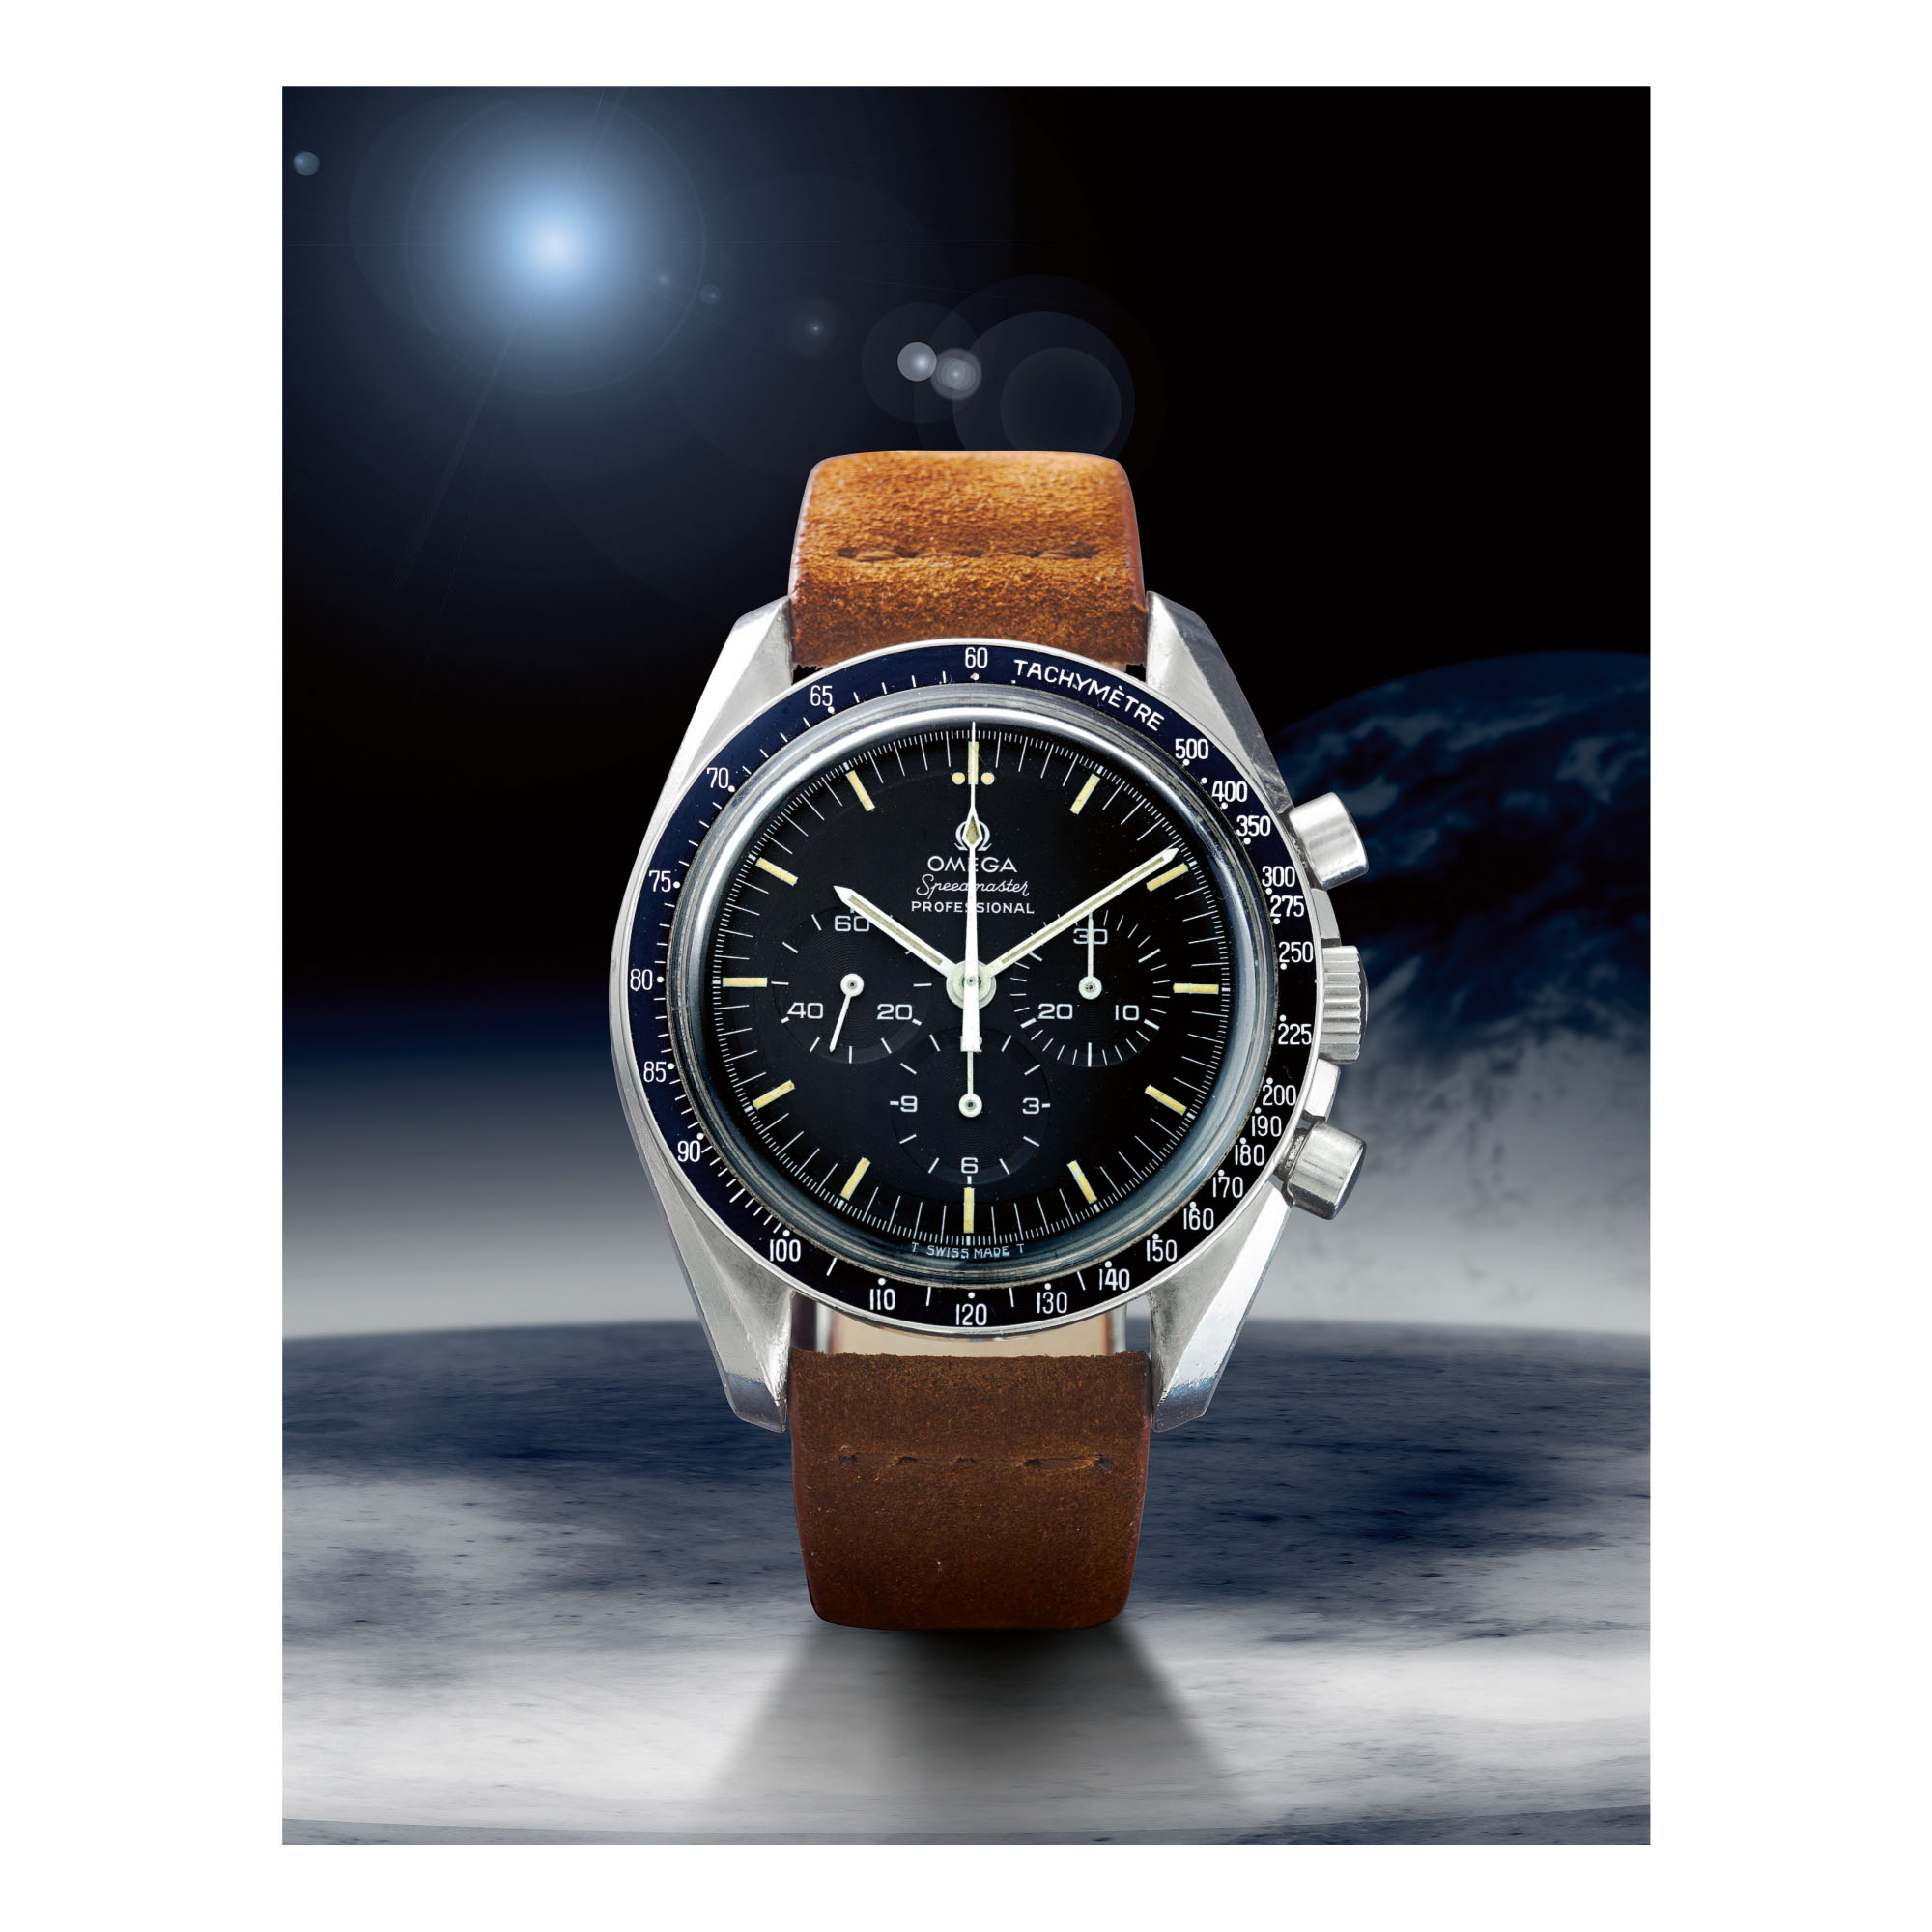 OMEGA   SPEEDMASTER REF 145.022-69 ST 'STEPPED DIAL', A STAINLESS STEEL CHRONOGRAPH WRISTWATCH, MADE IN 1970